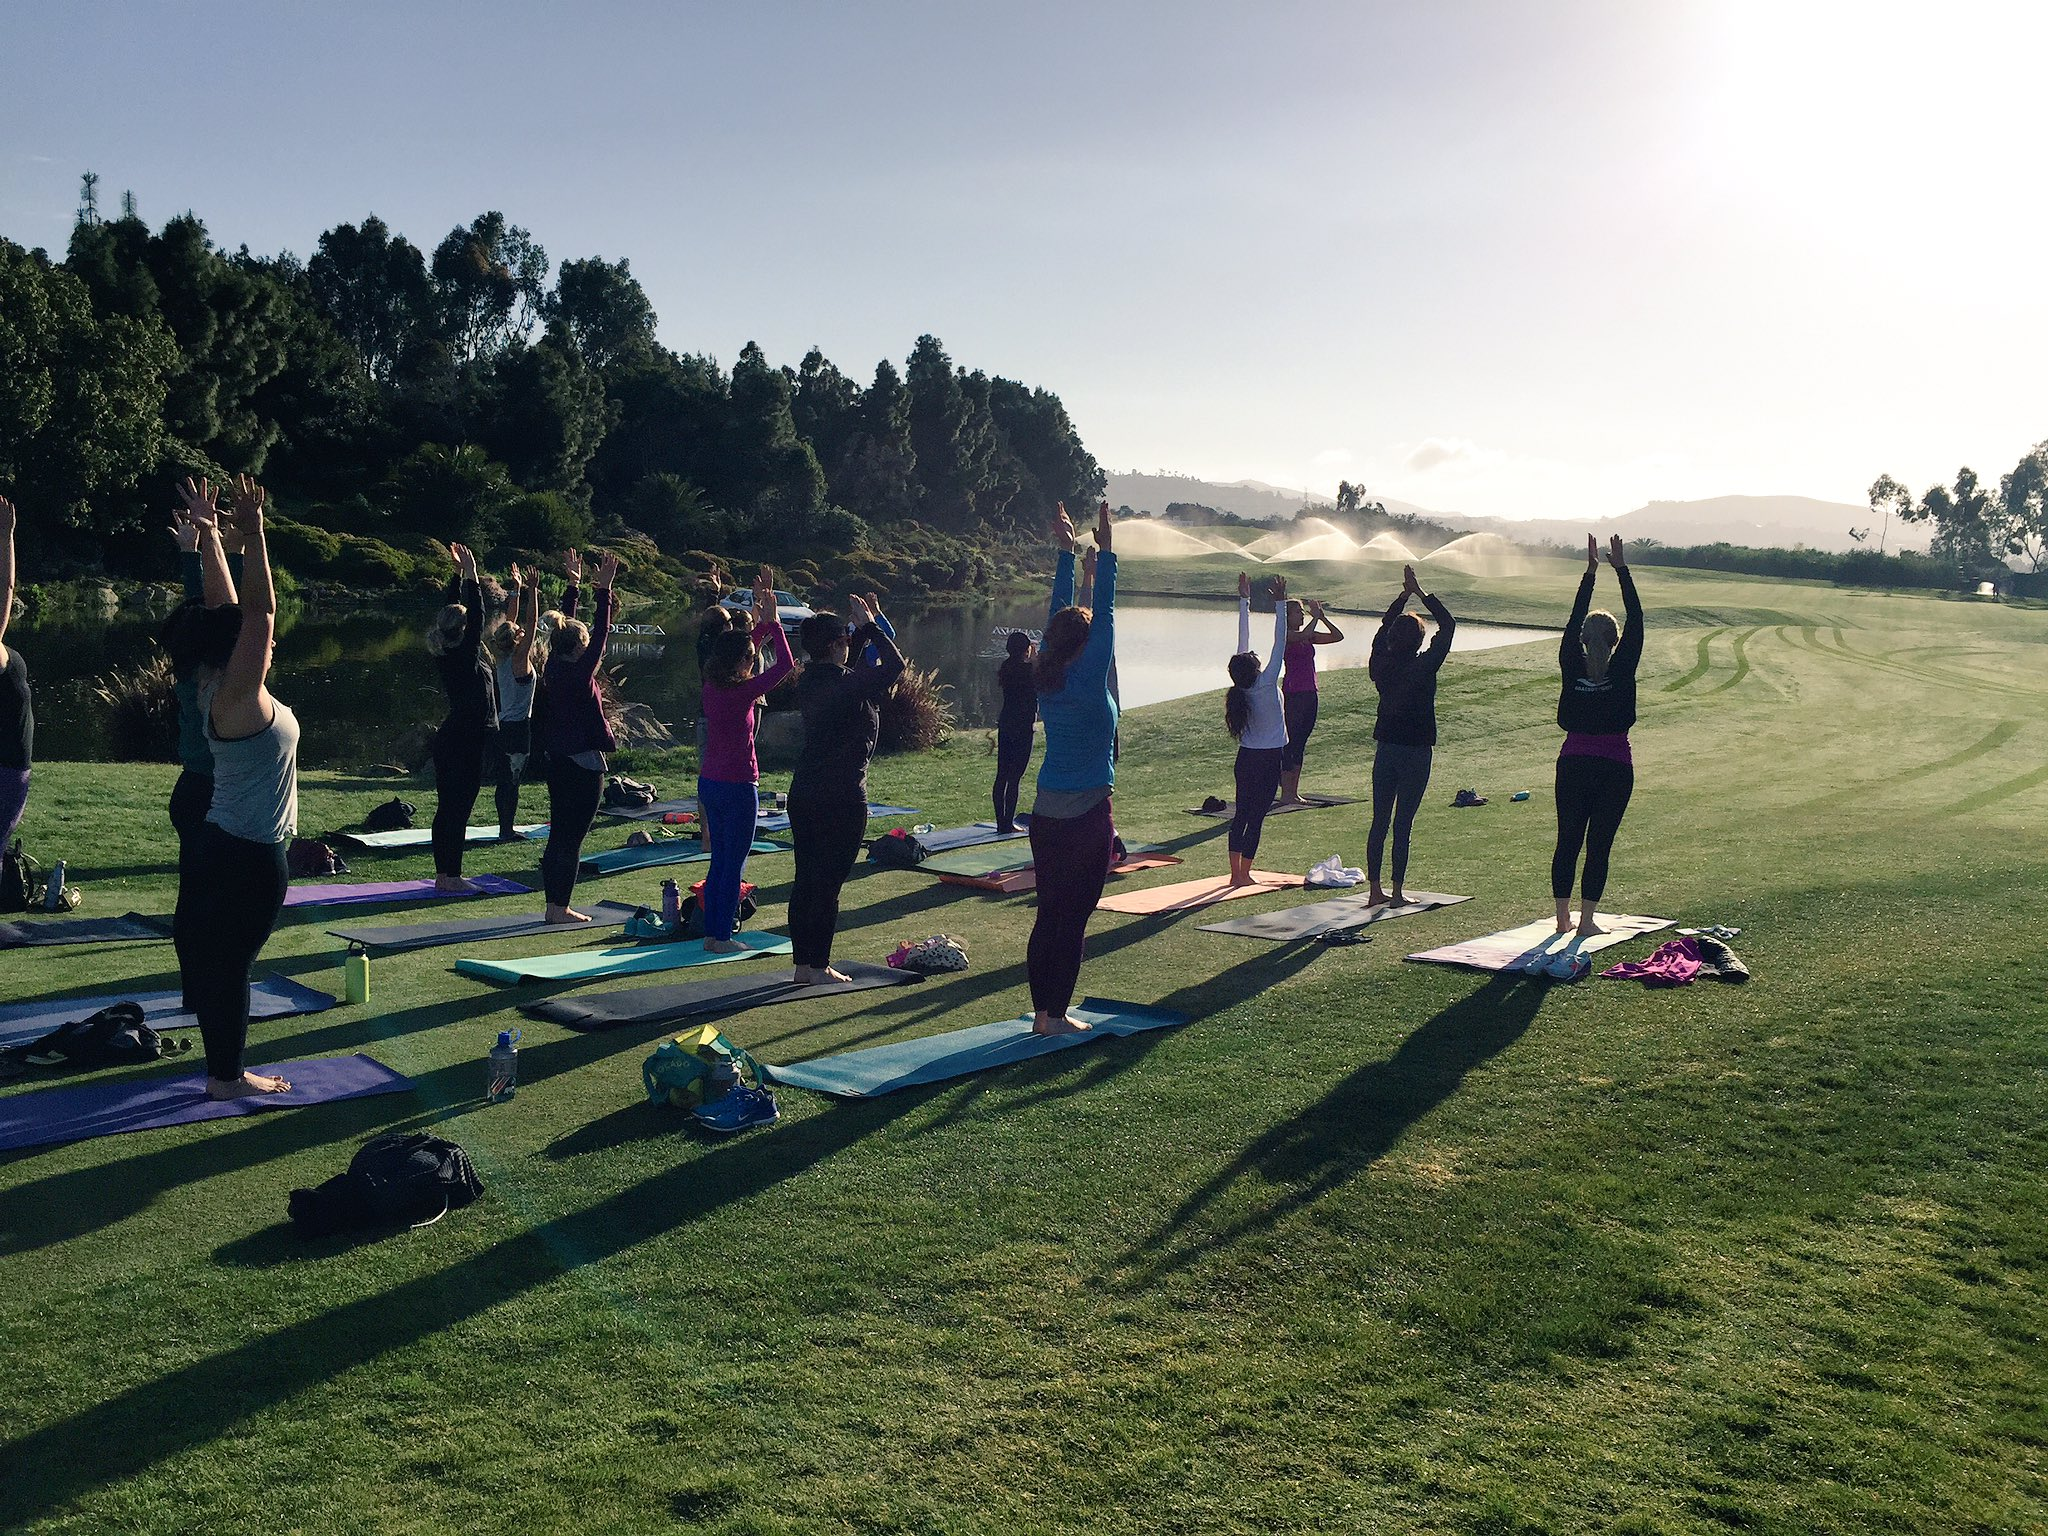 Beautiful morning for #YogaontheGreen with @gracedbygrit thank you for joining us! #KiaClassic https://t.co/QoAPECO5gl